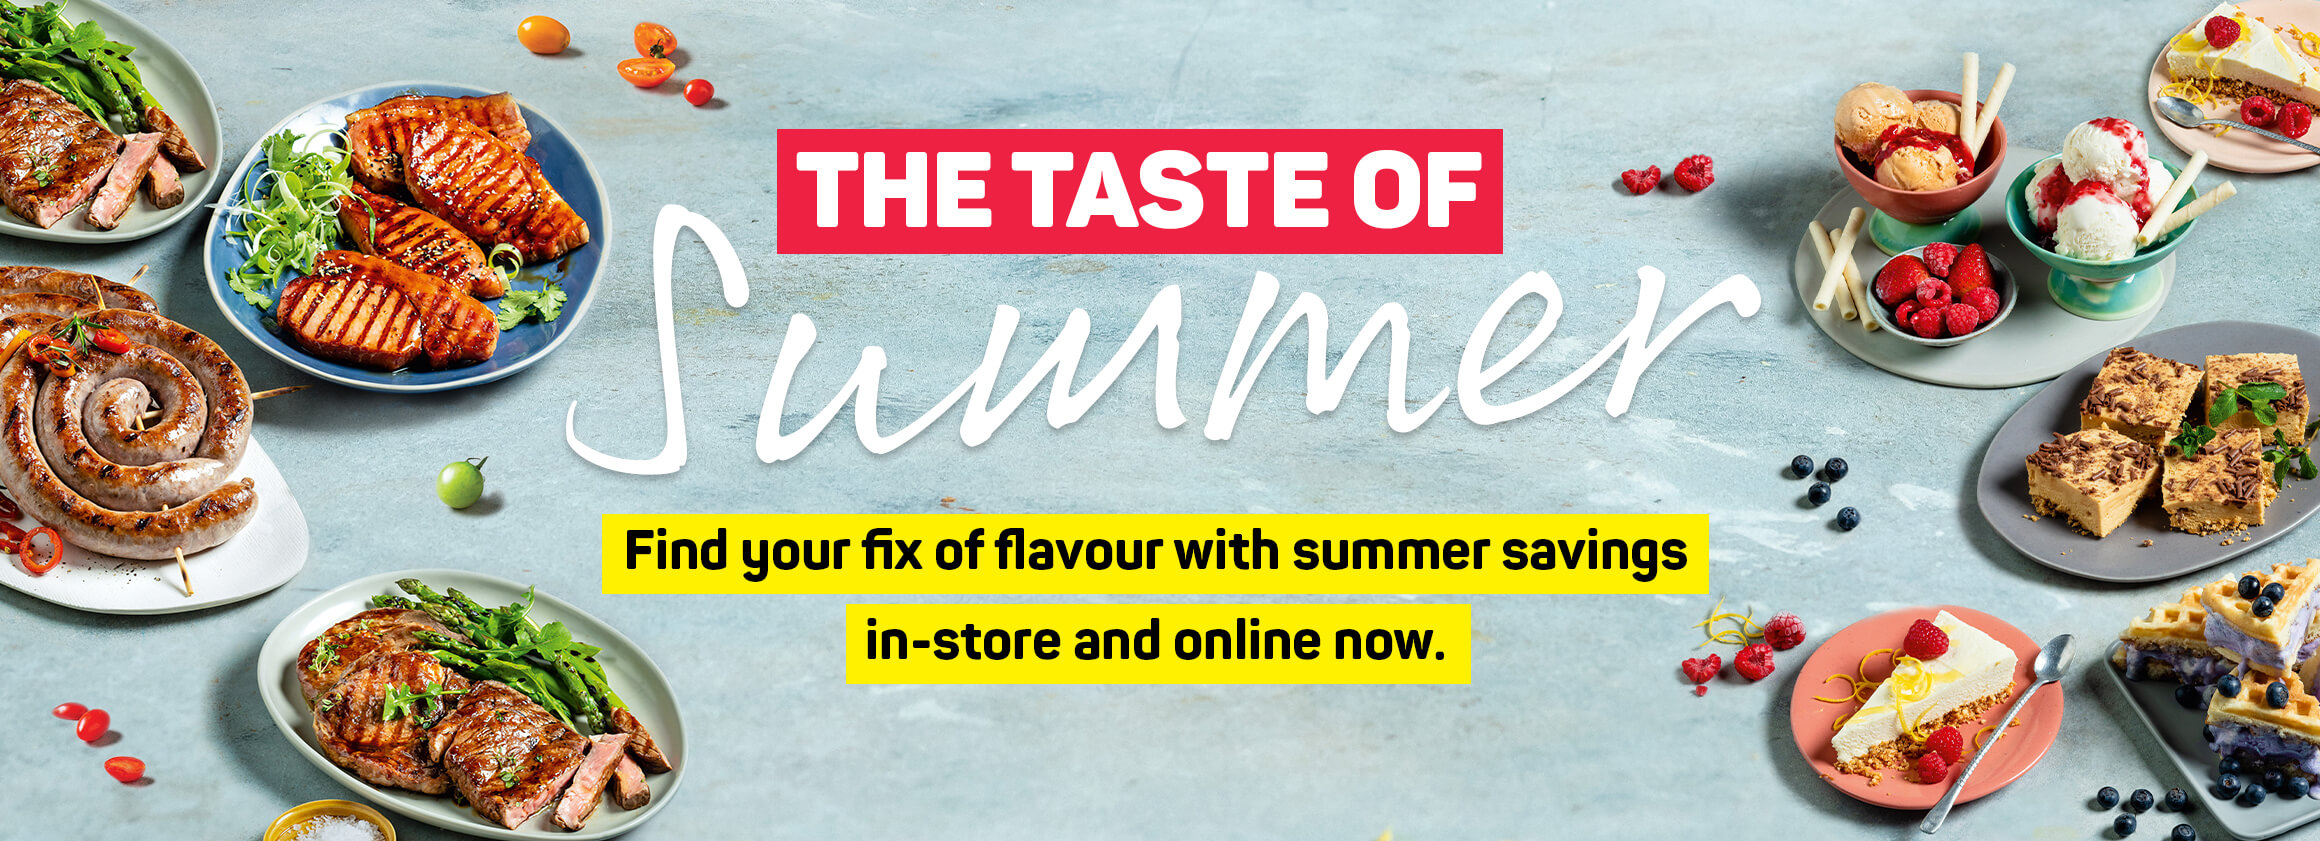 The taste of Summer. Find your fix of flavour with summer savings in-store and online now